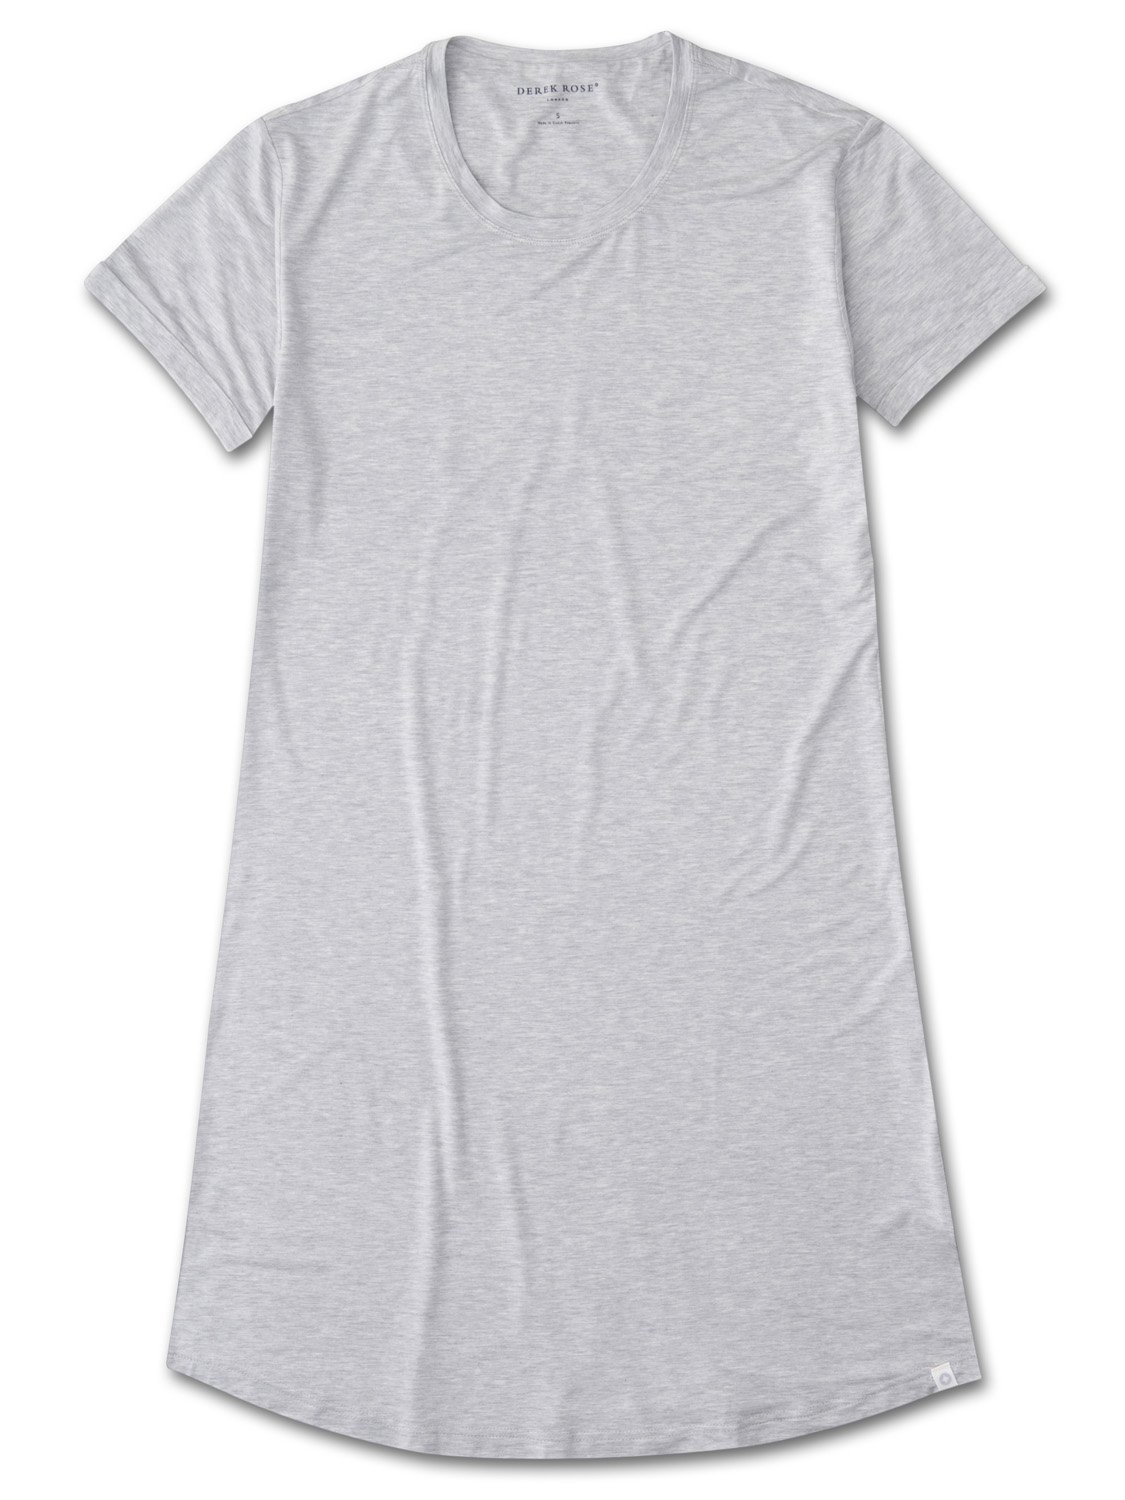 Women's Sleep T-Shirt Ethan Micro Modal Stretch Silver